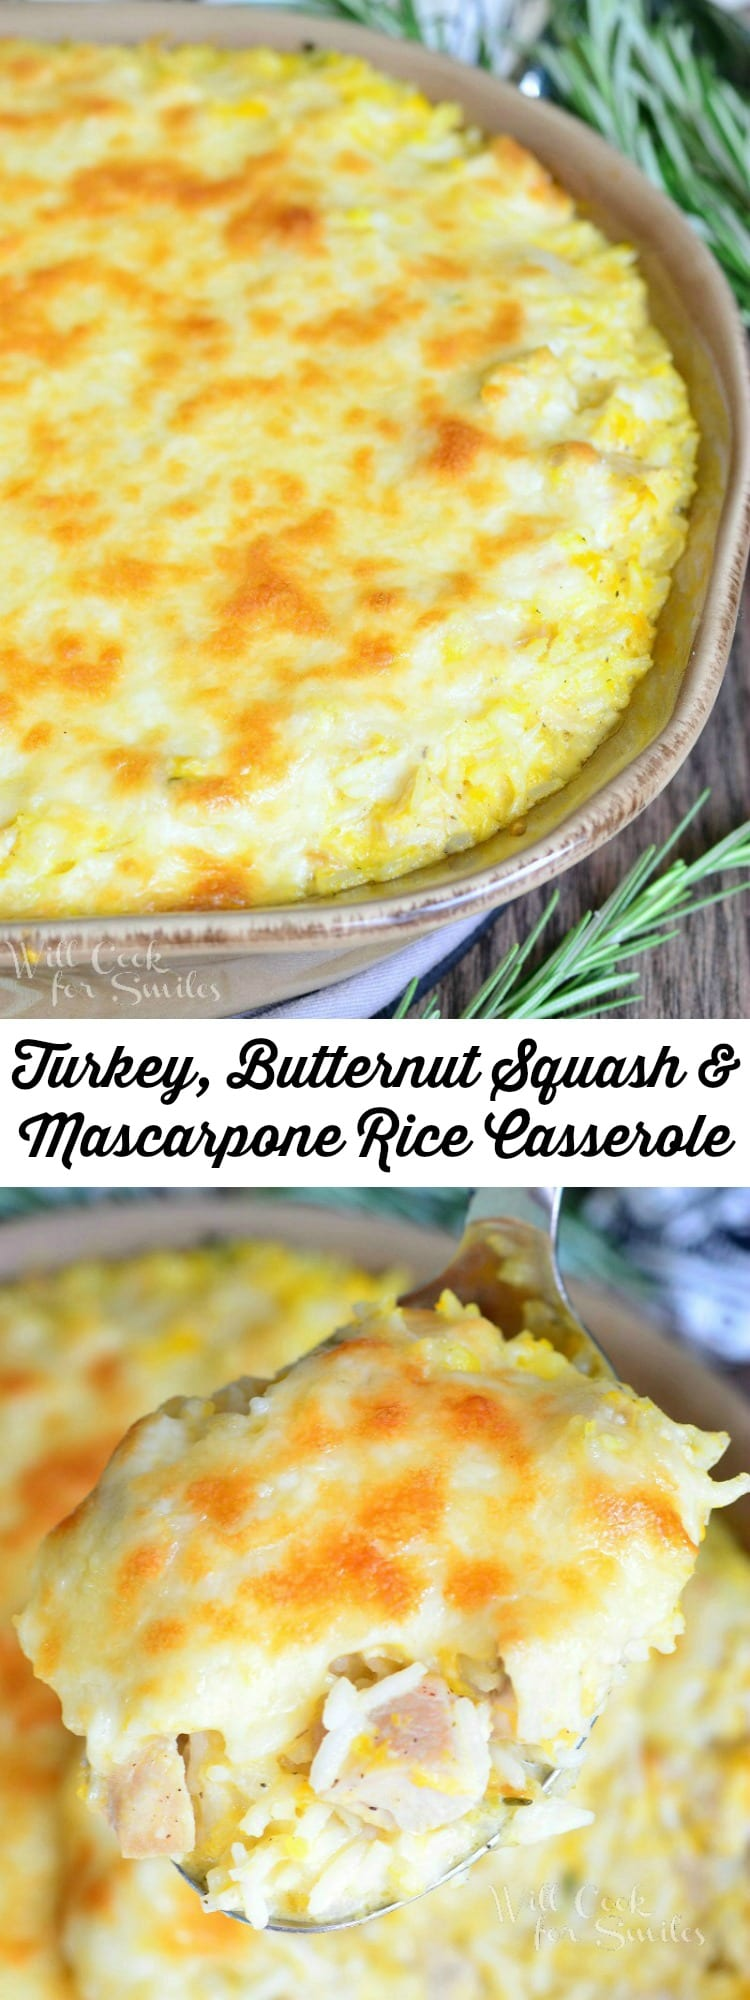 Turkey, Butternut Squash and Mascarpone Rice Casserole | from willcookforsmiles.com #turkey #chicken #comfortfood